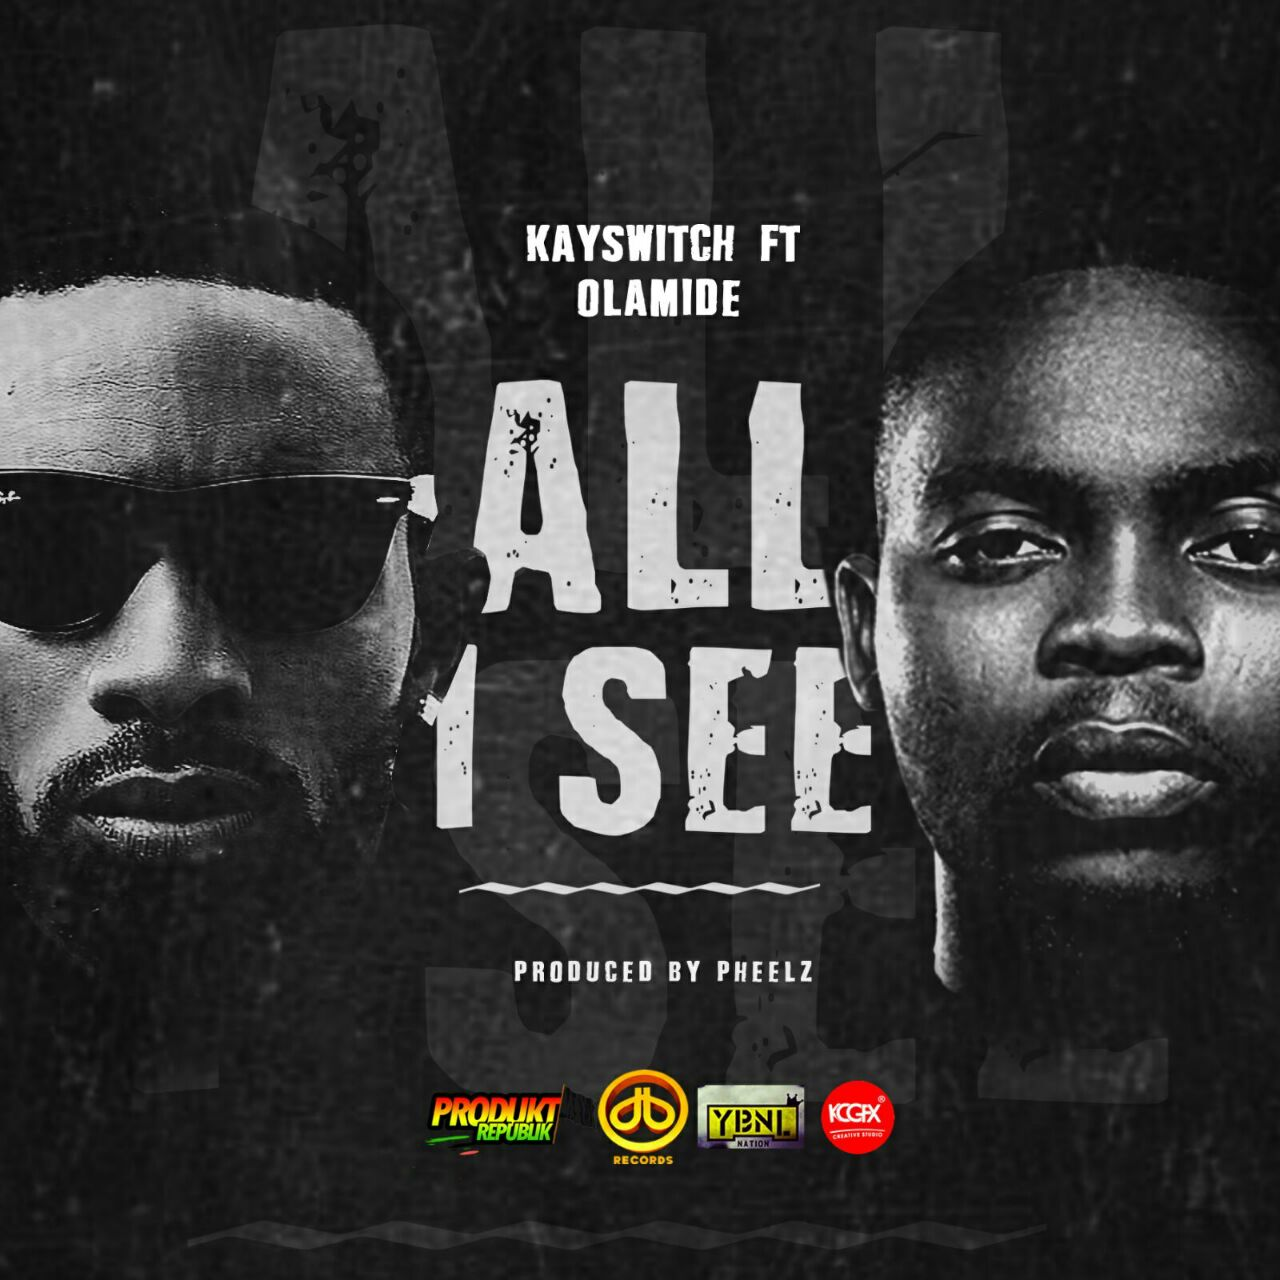 PREMIERE: Kayswitch ft. Olamide - All I See (Joy) | (prod. Pheelz)